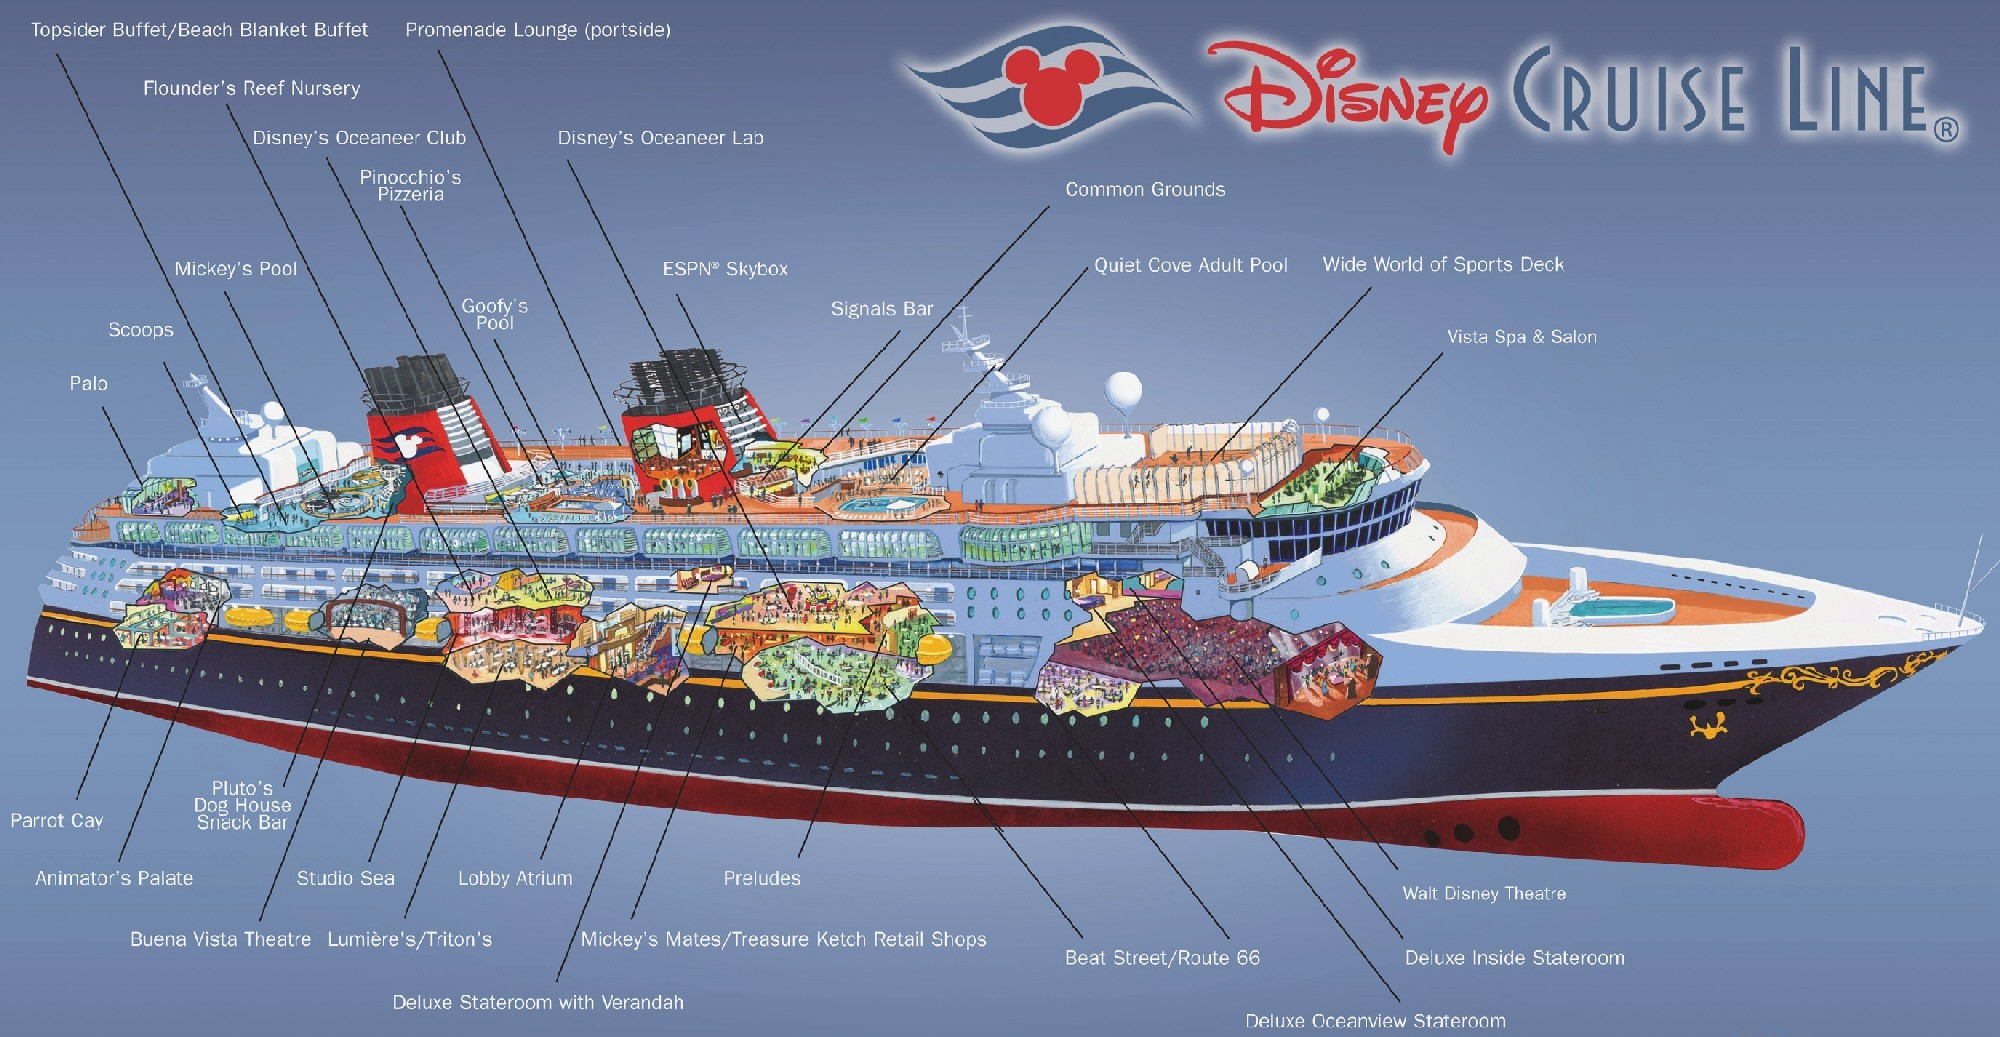 Disney cruise plan picture disney cruise plan image for The world deck plans